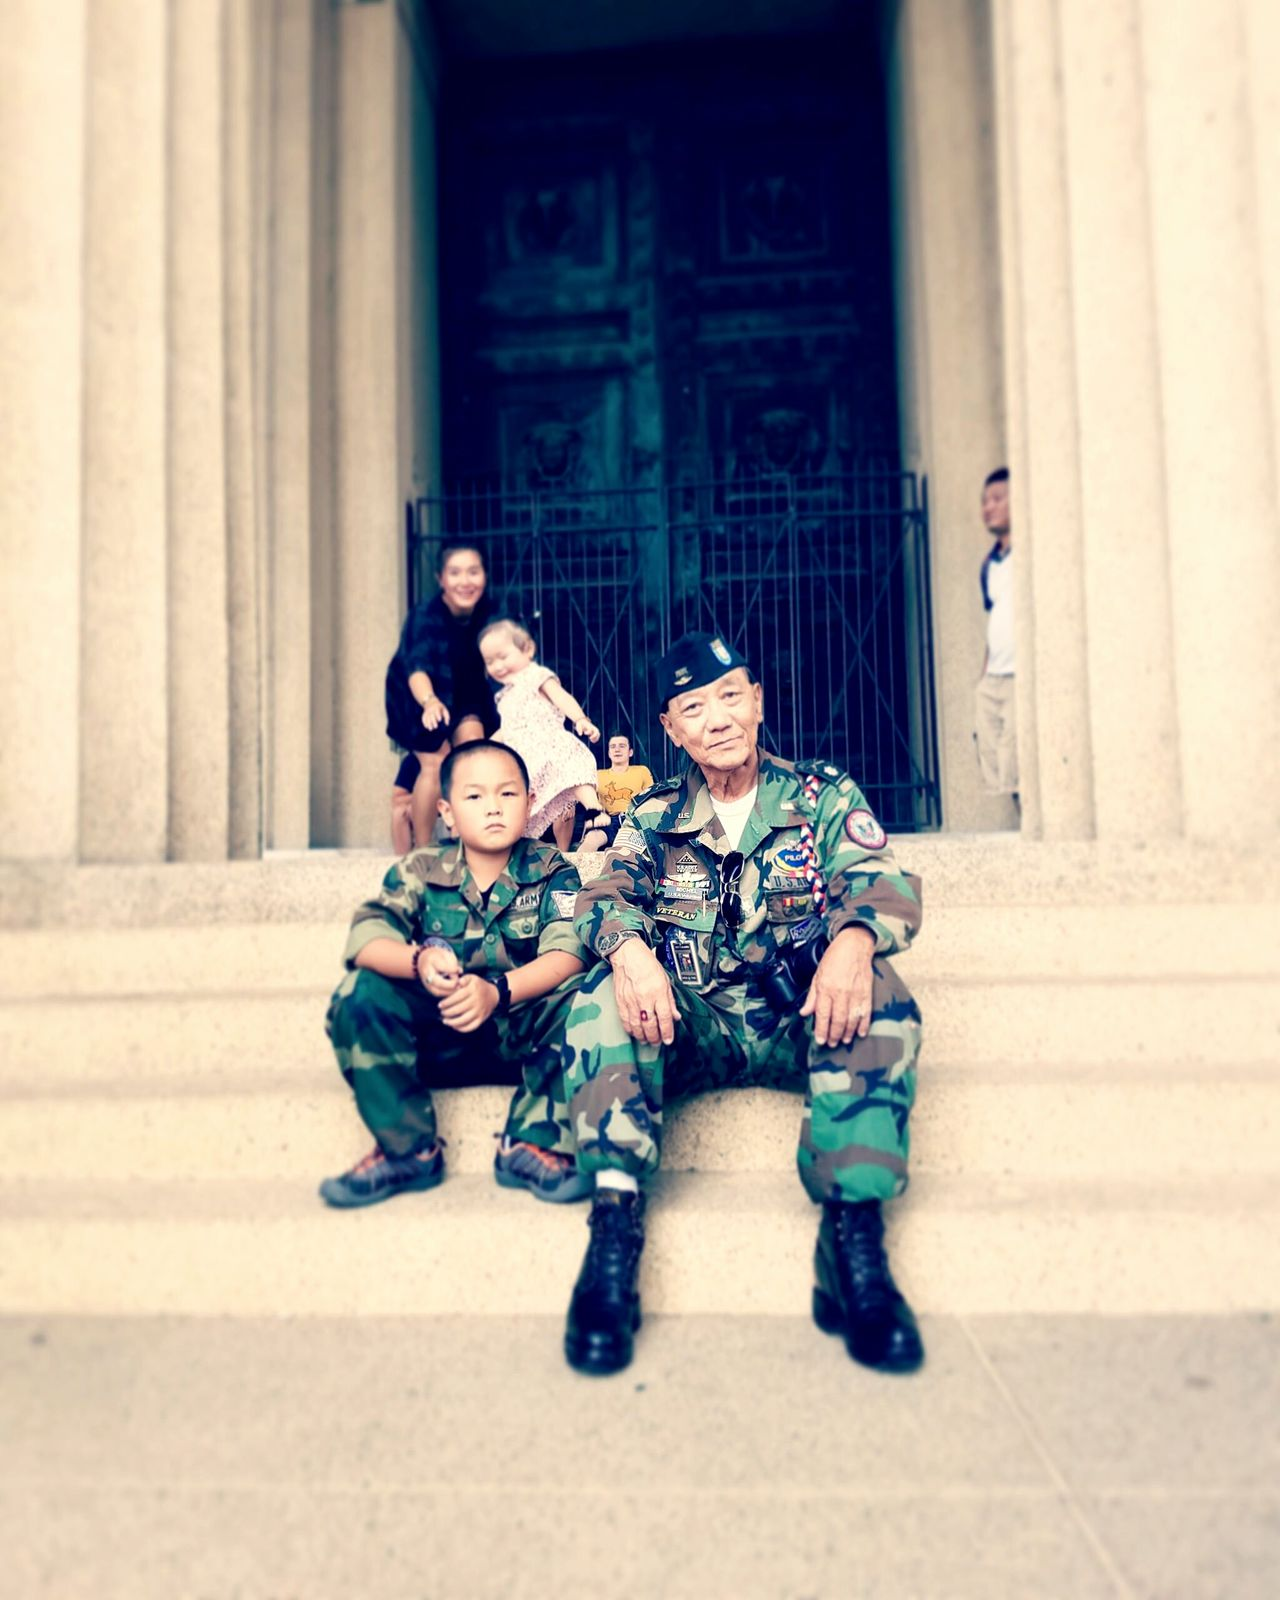 Child Parent Sitting Females Built Structure Outdoors Building Exterior Childhood People City Son Day Architecture Adult Nashville NASHVILLE,TENNESSEE Parthenon Military Uniform Military Army Army Life Army Strong Pilot Veterans